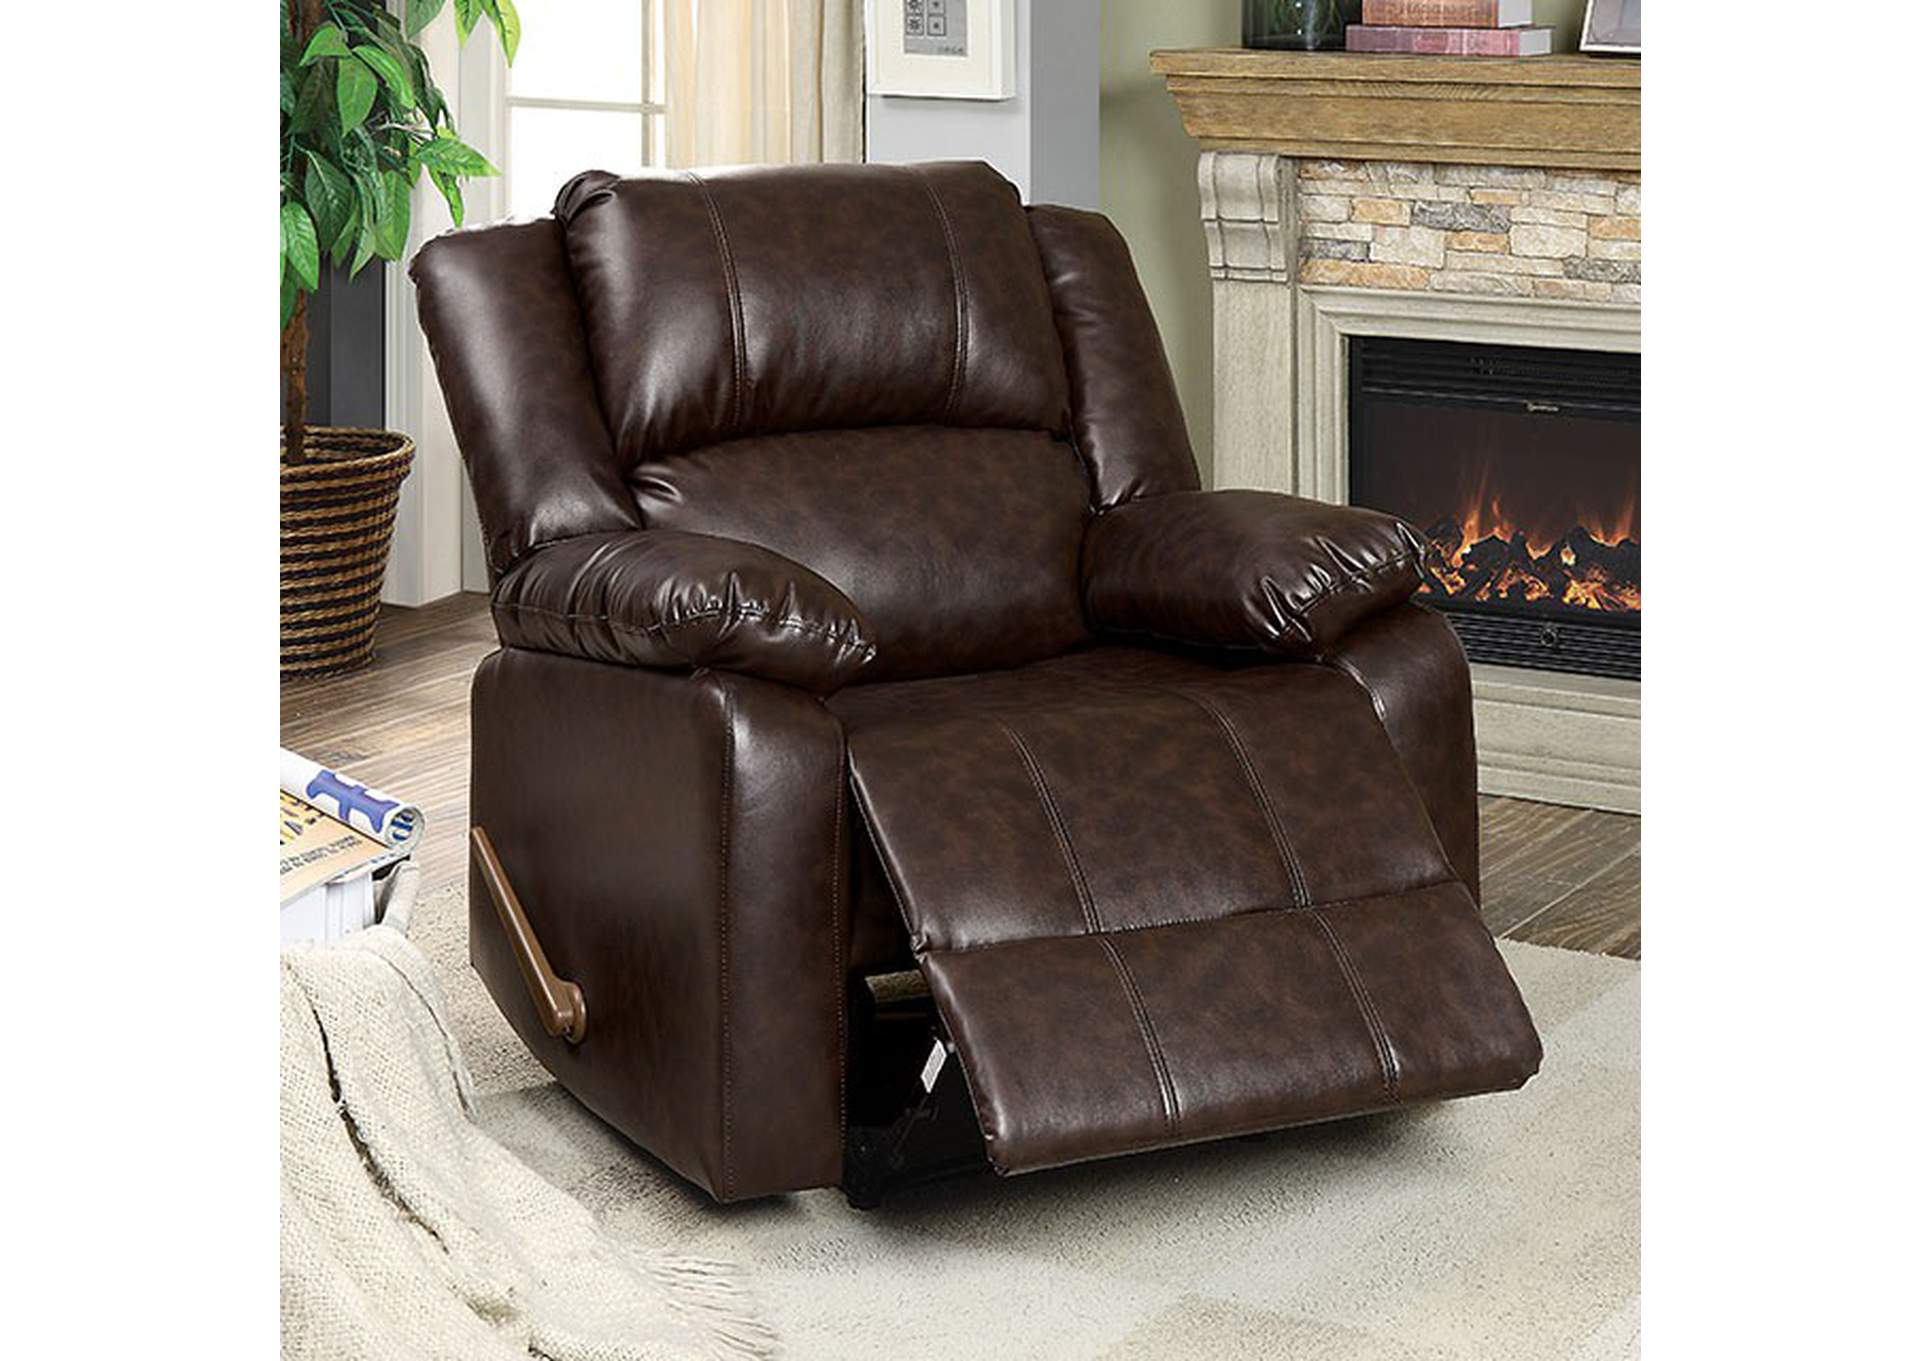 Superbe Mclaughlin Brown Leather Recliner,Furniture Of America